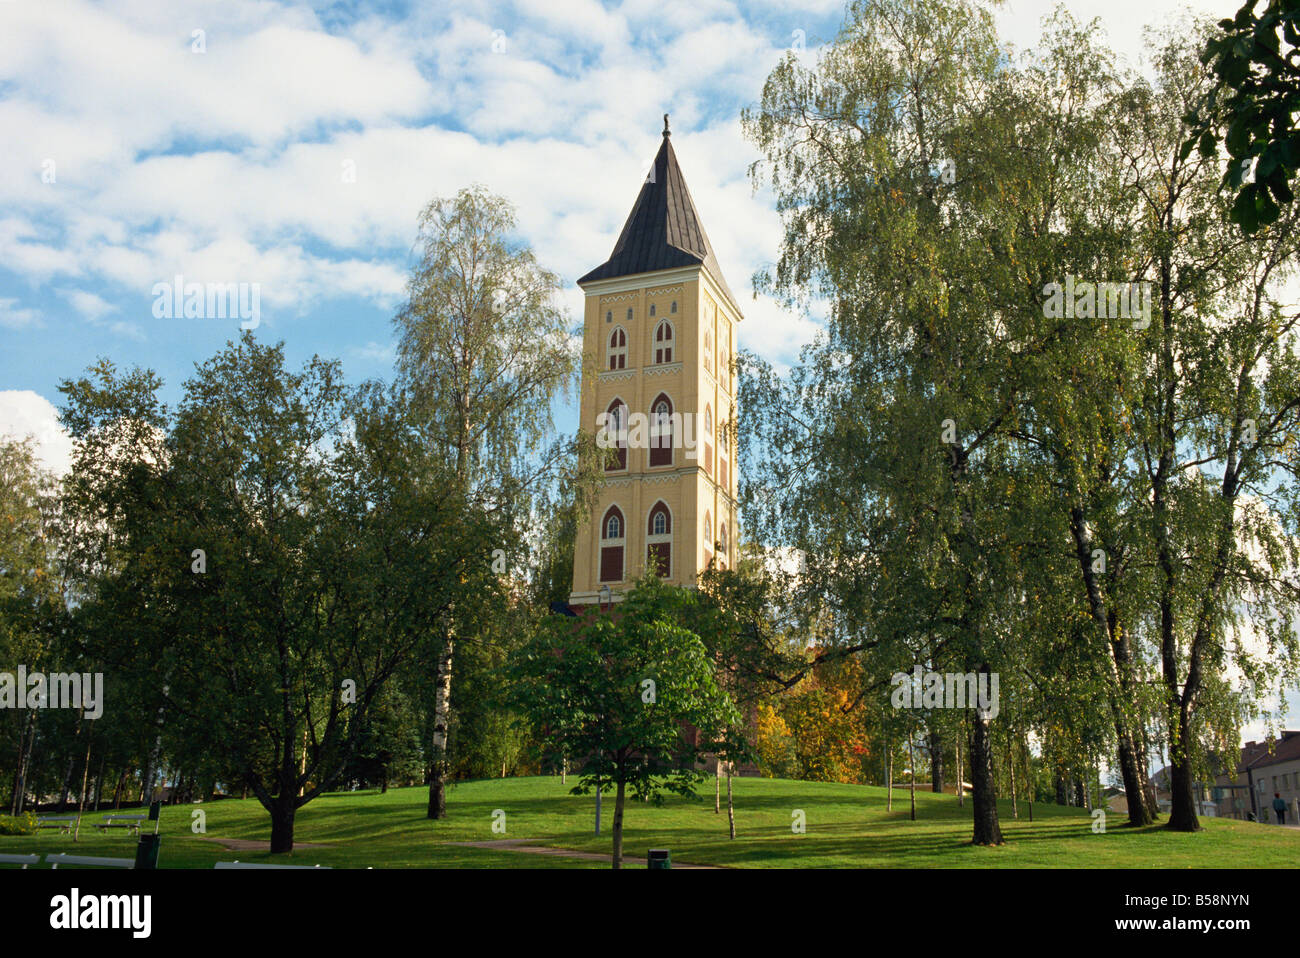 Detached belltower of Lappee Church in Central Public Park Lappeenranta Finland Scandinavia Europe - Stock Image